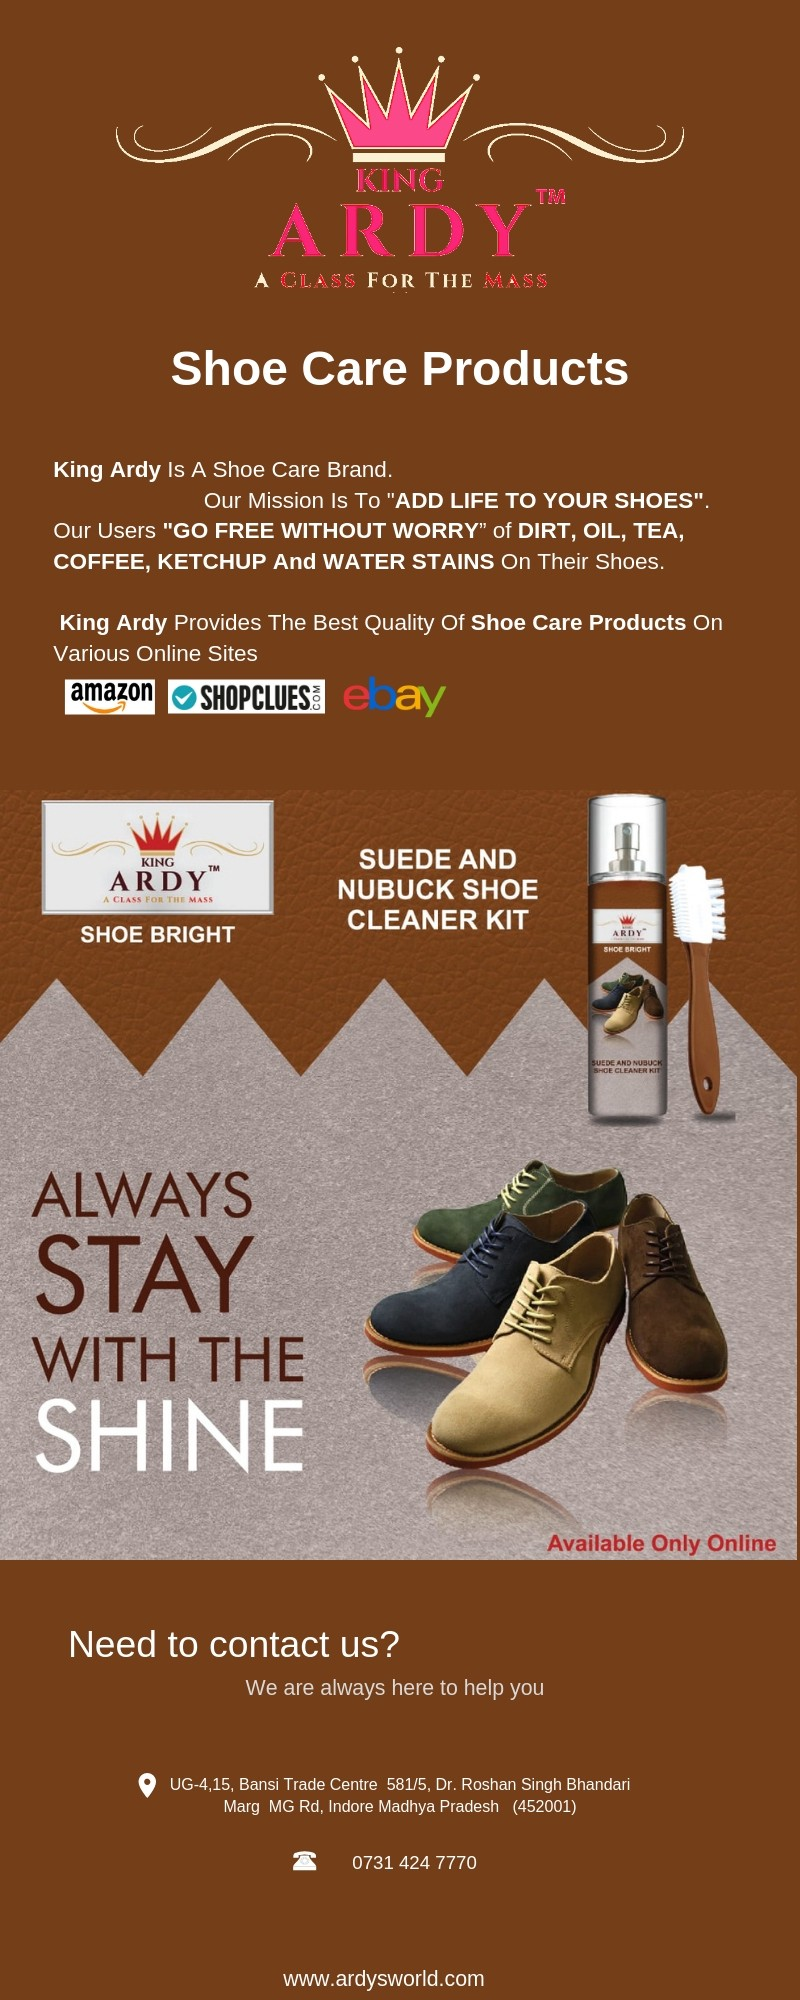 best shoe care products - King Ardy - Medium